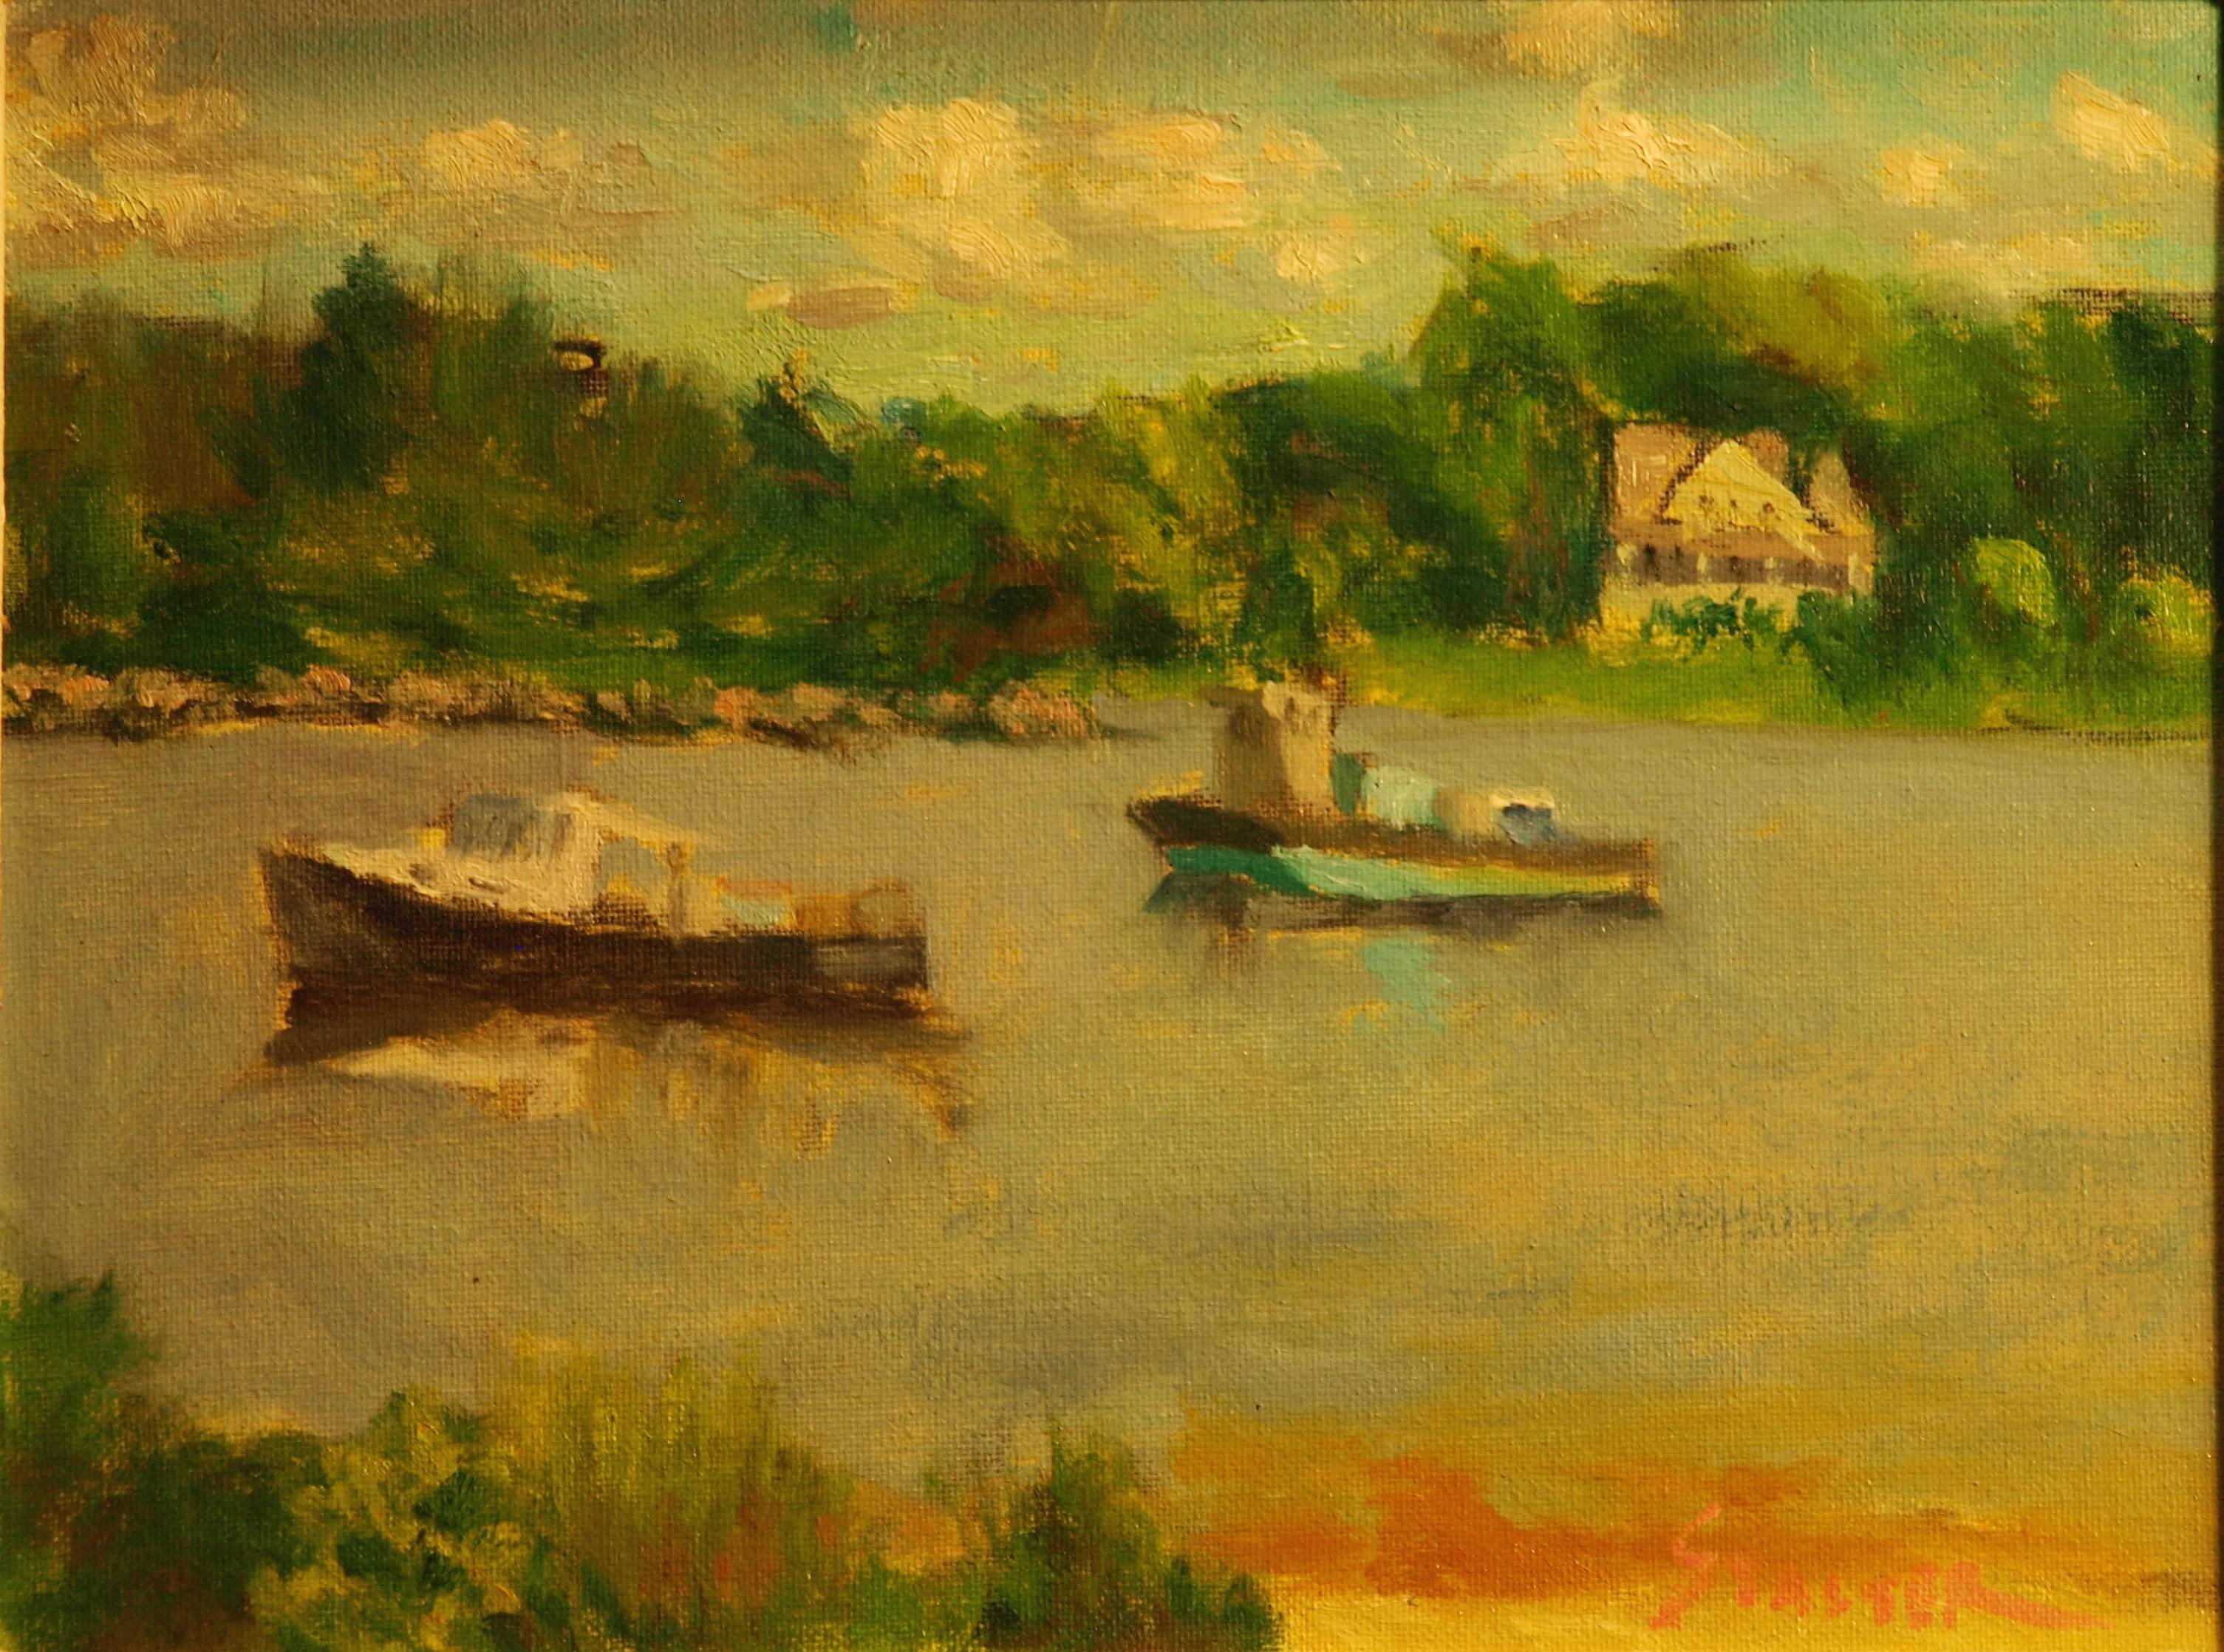 Rowayton Boats, Oil on Canvas on Panel, 9 x 12 Inches, by Richard Stalter, $225